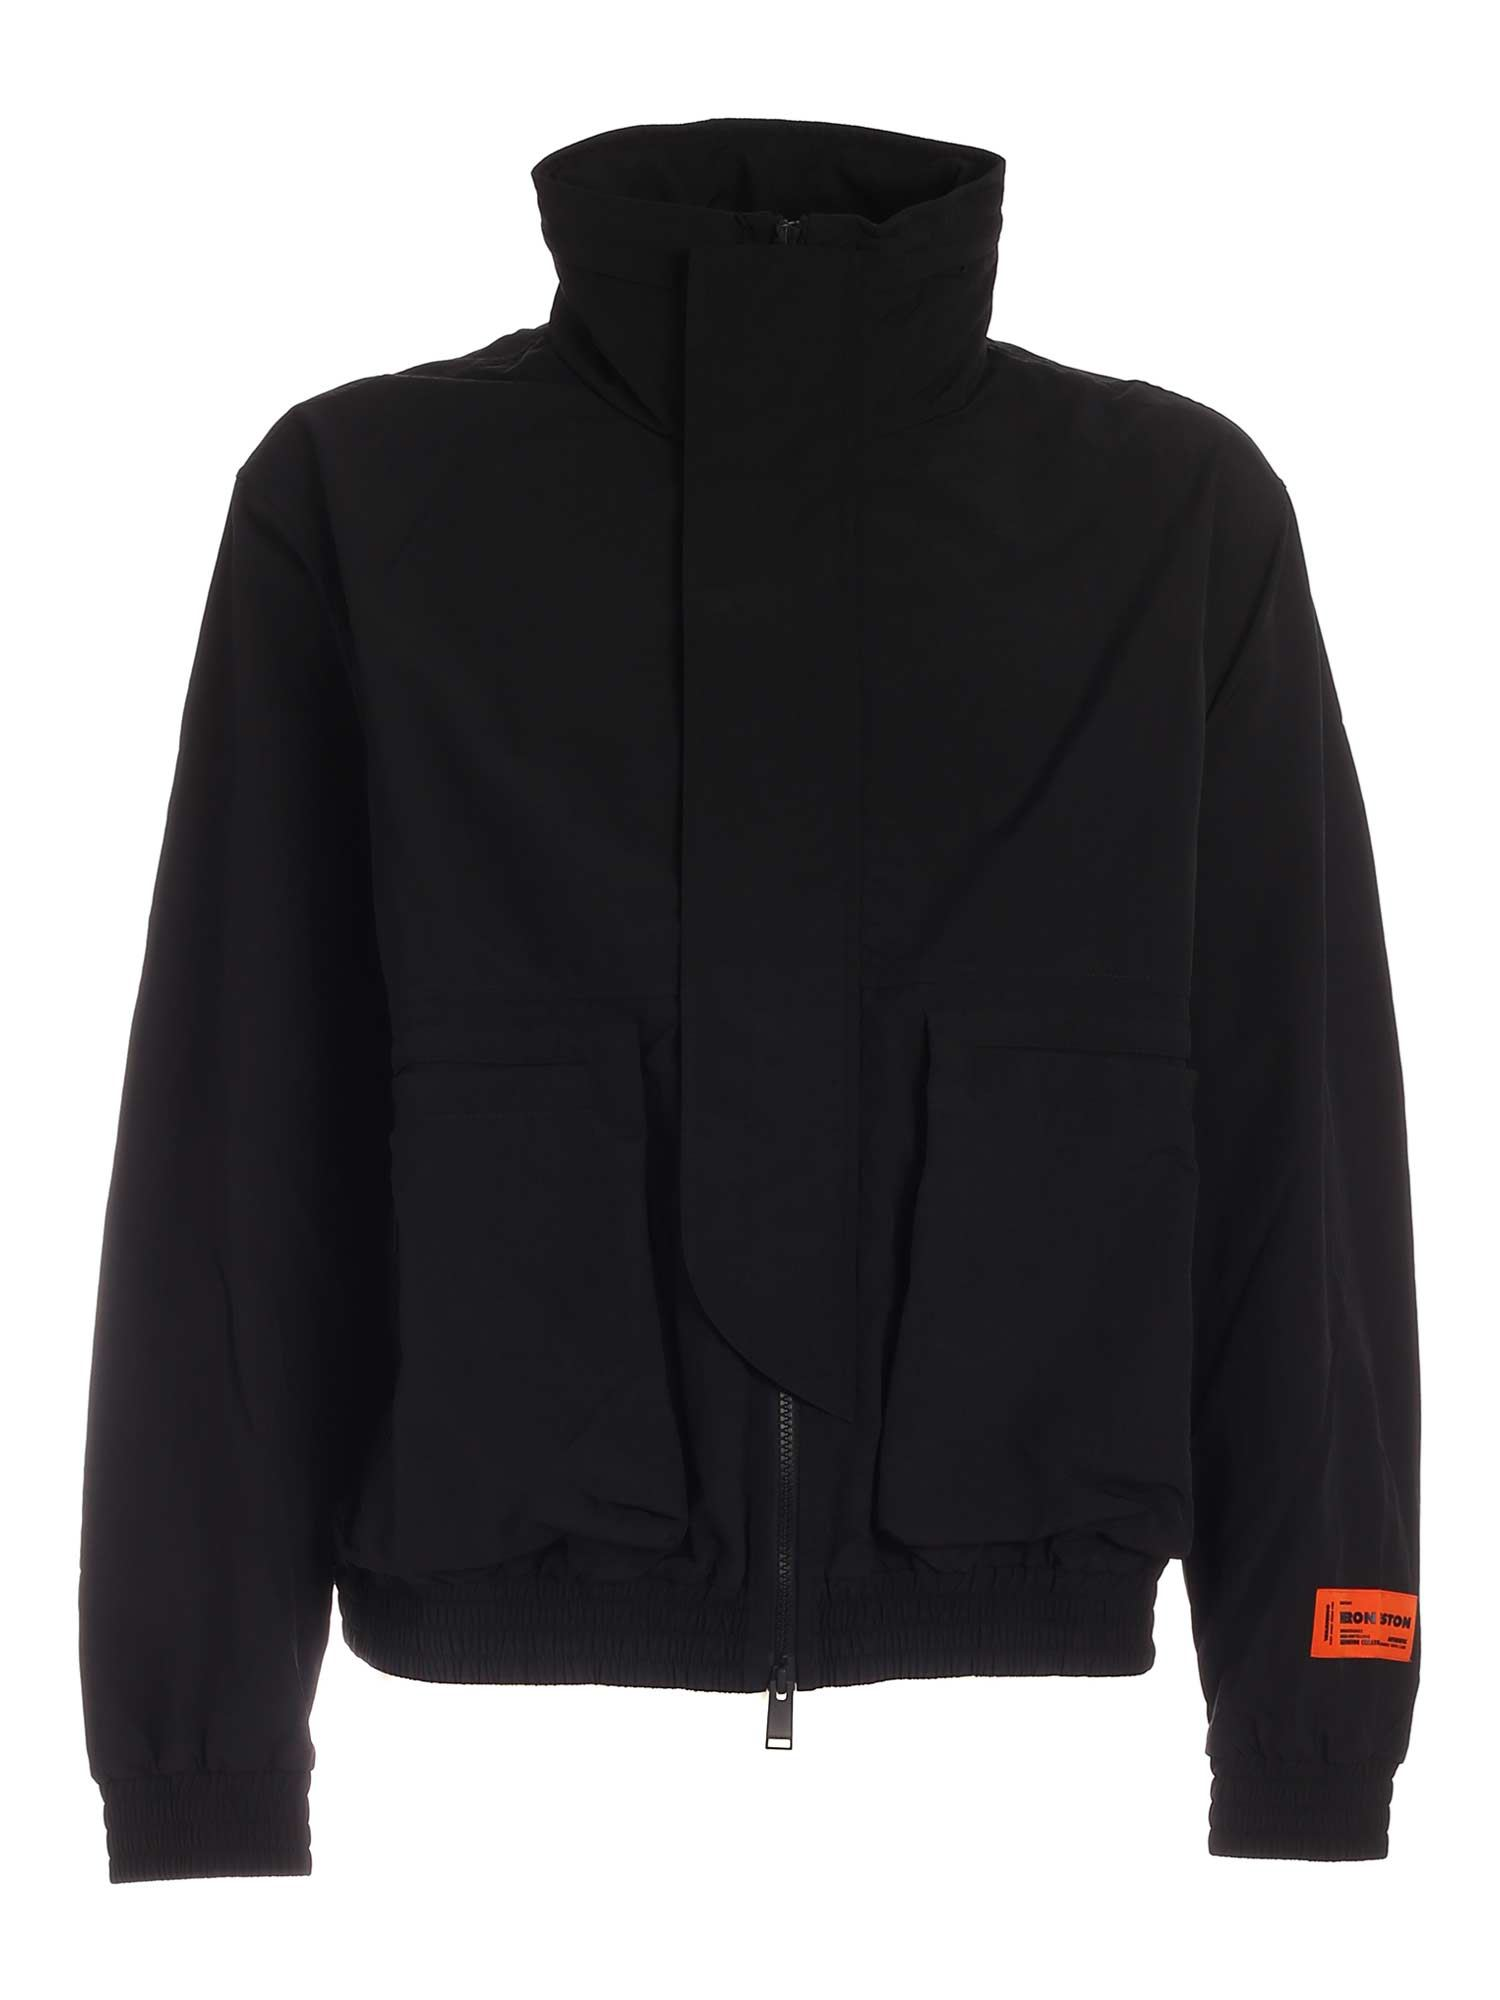 Heron Preston CONTRASTING PRINT JACKET IN BLACK